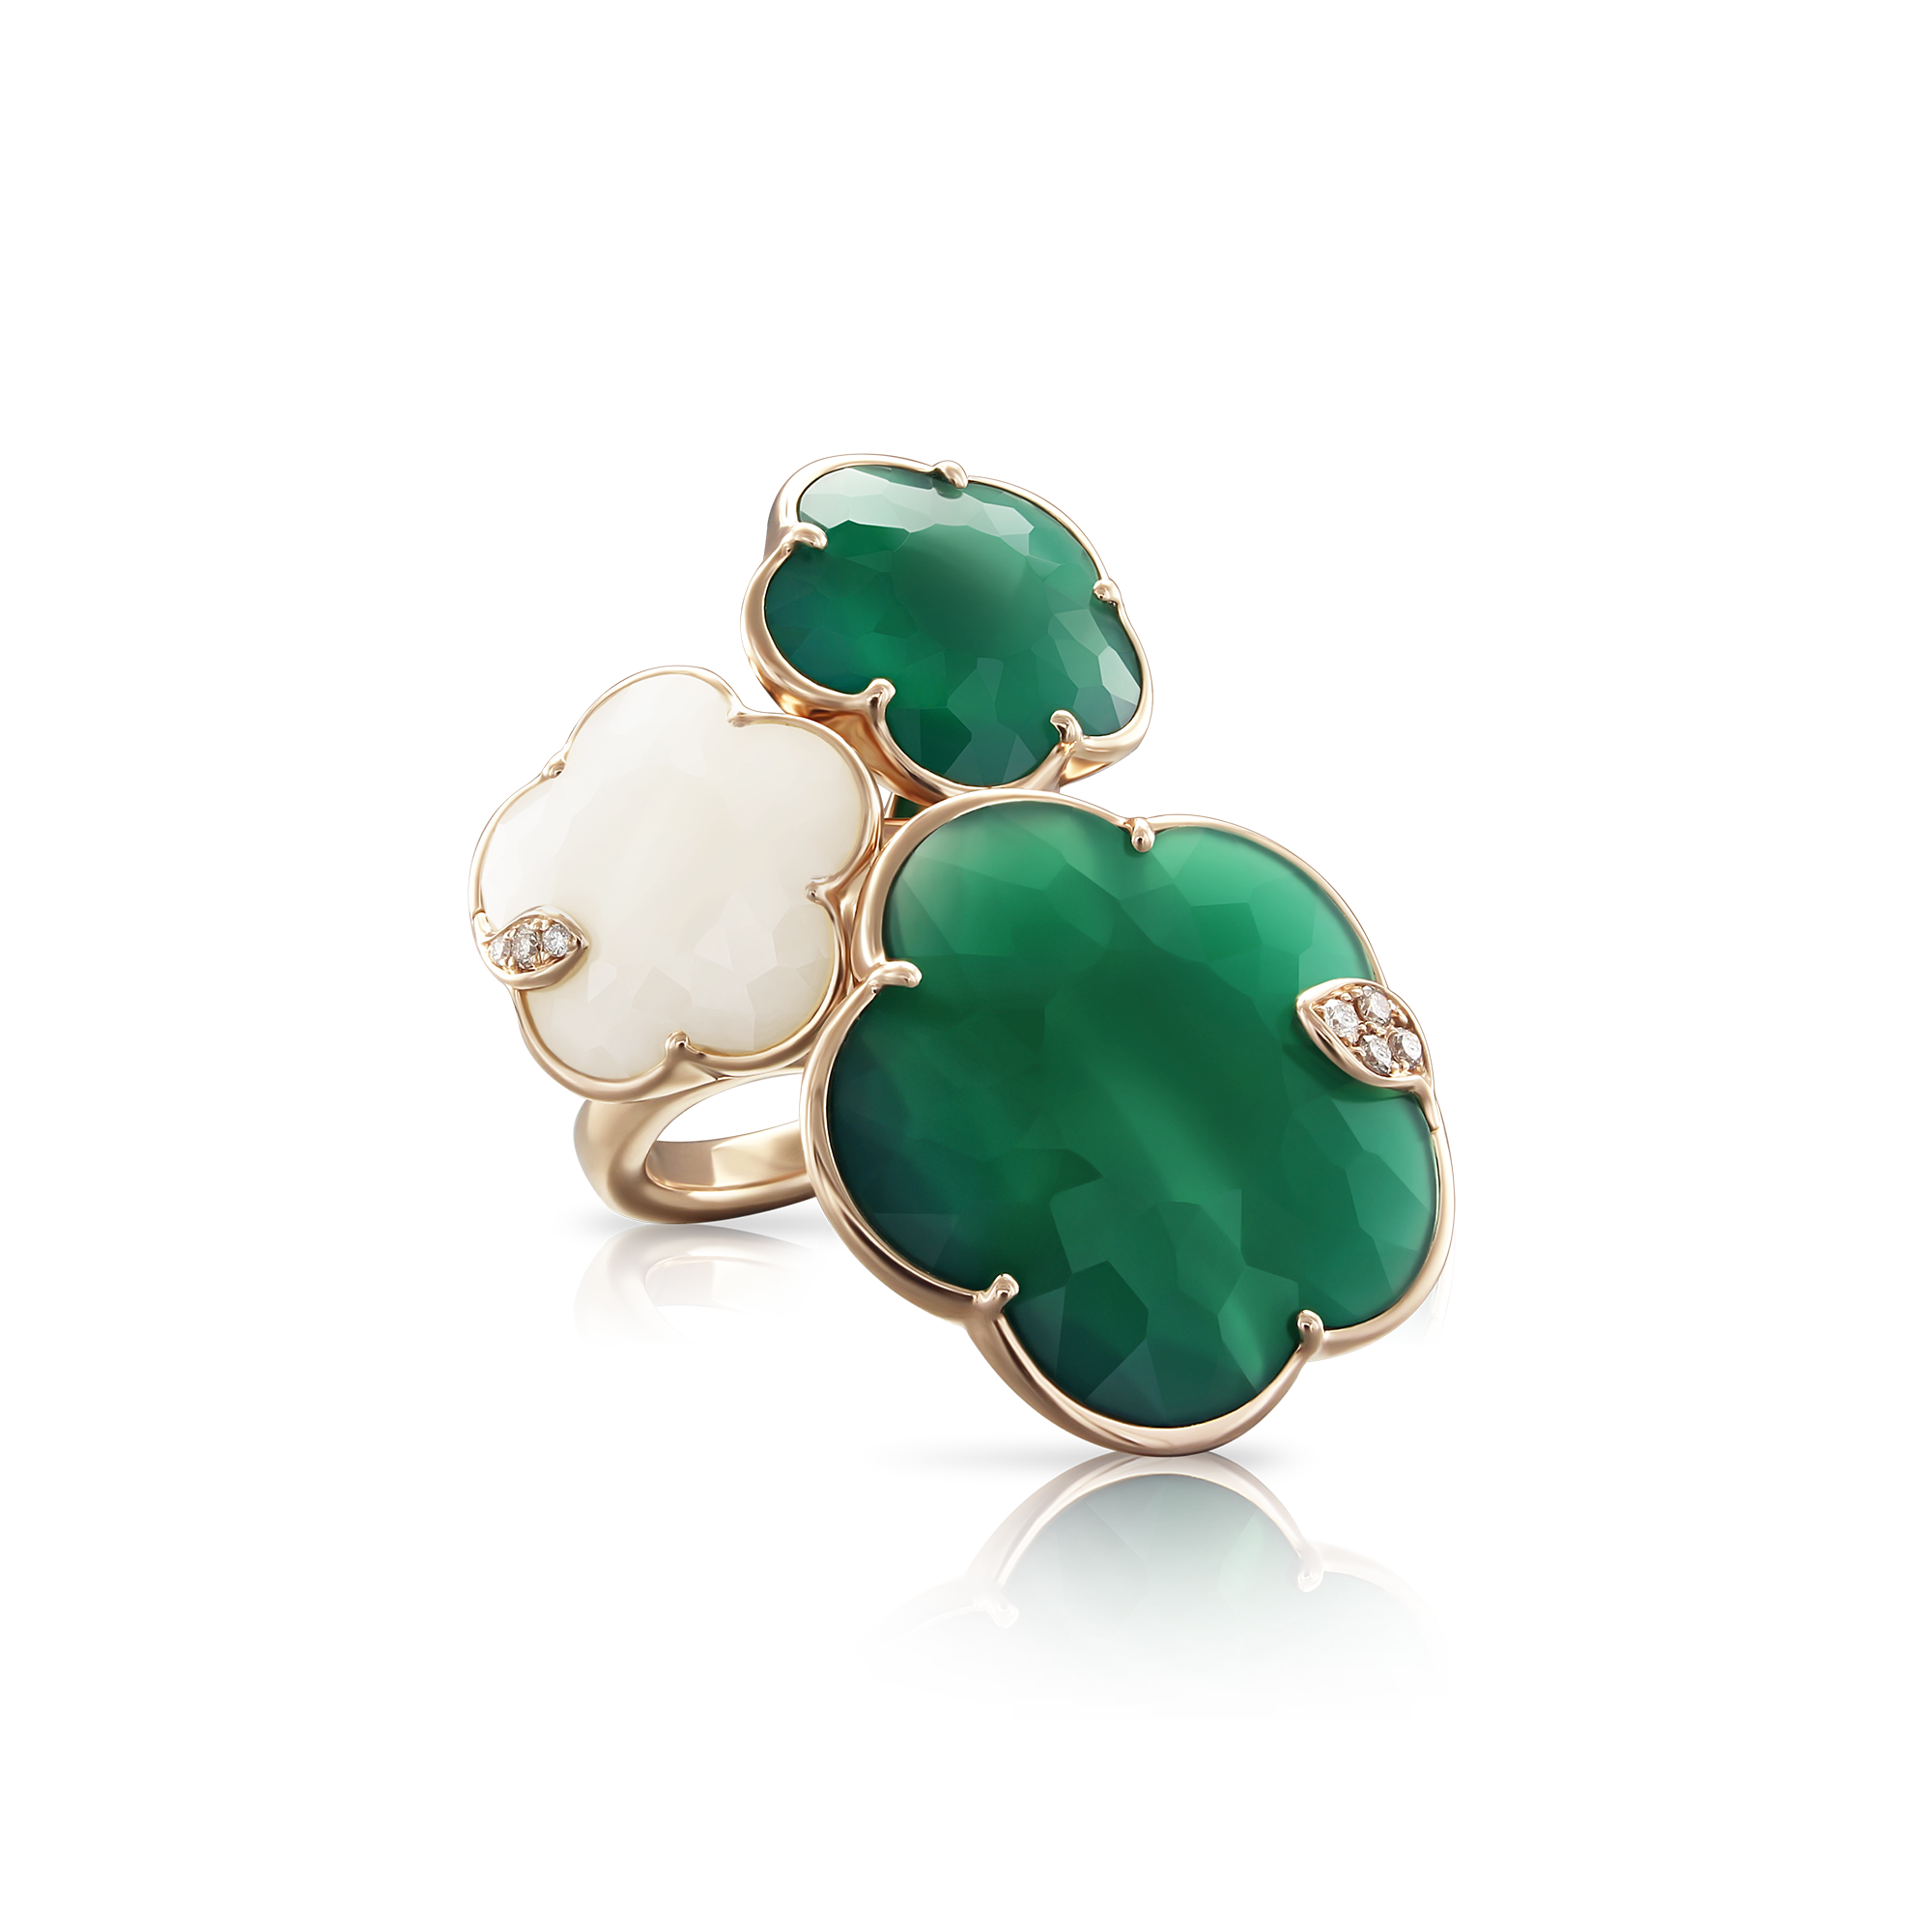 18k Rose Gold Ton Joli Ring with White Agate, Green Agate, White and Champagne Diamonds